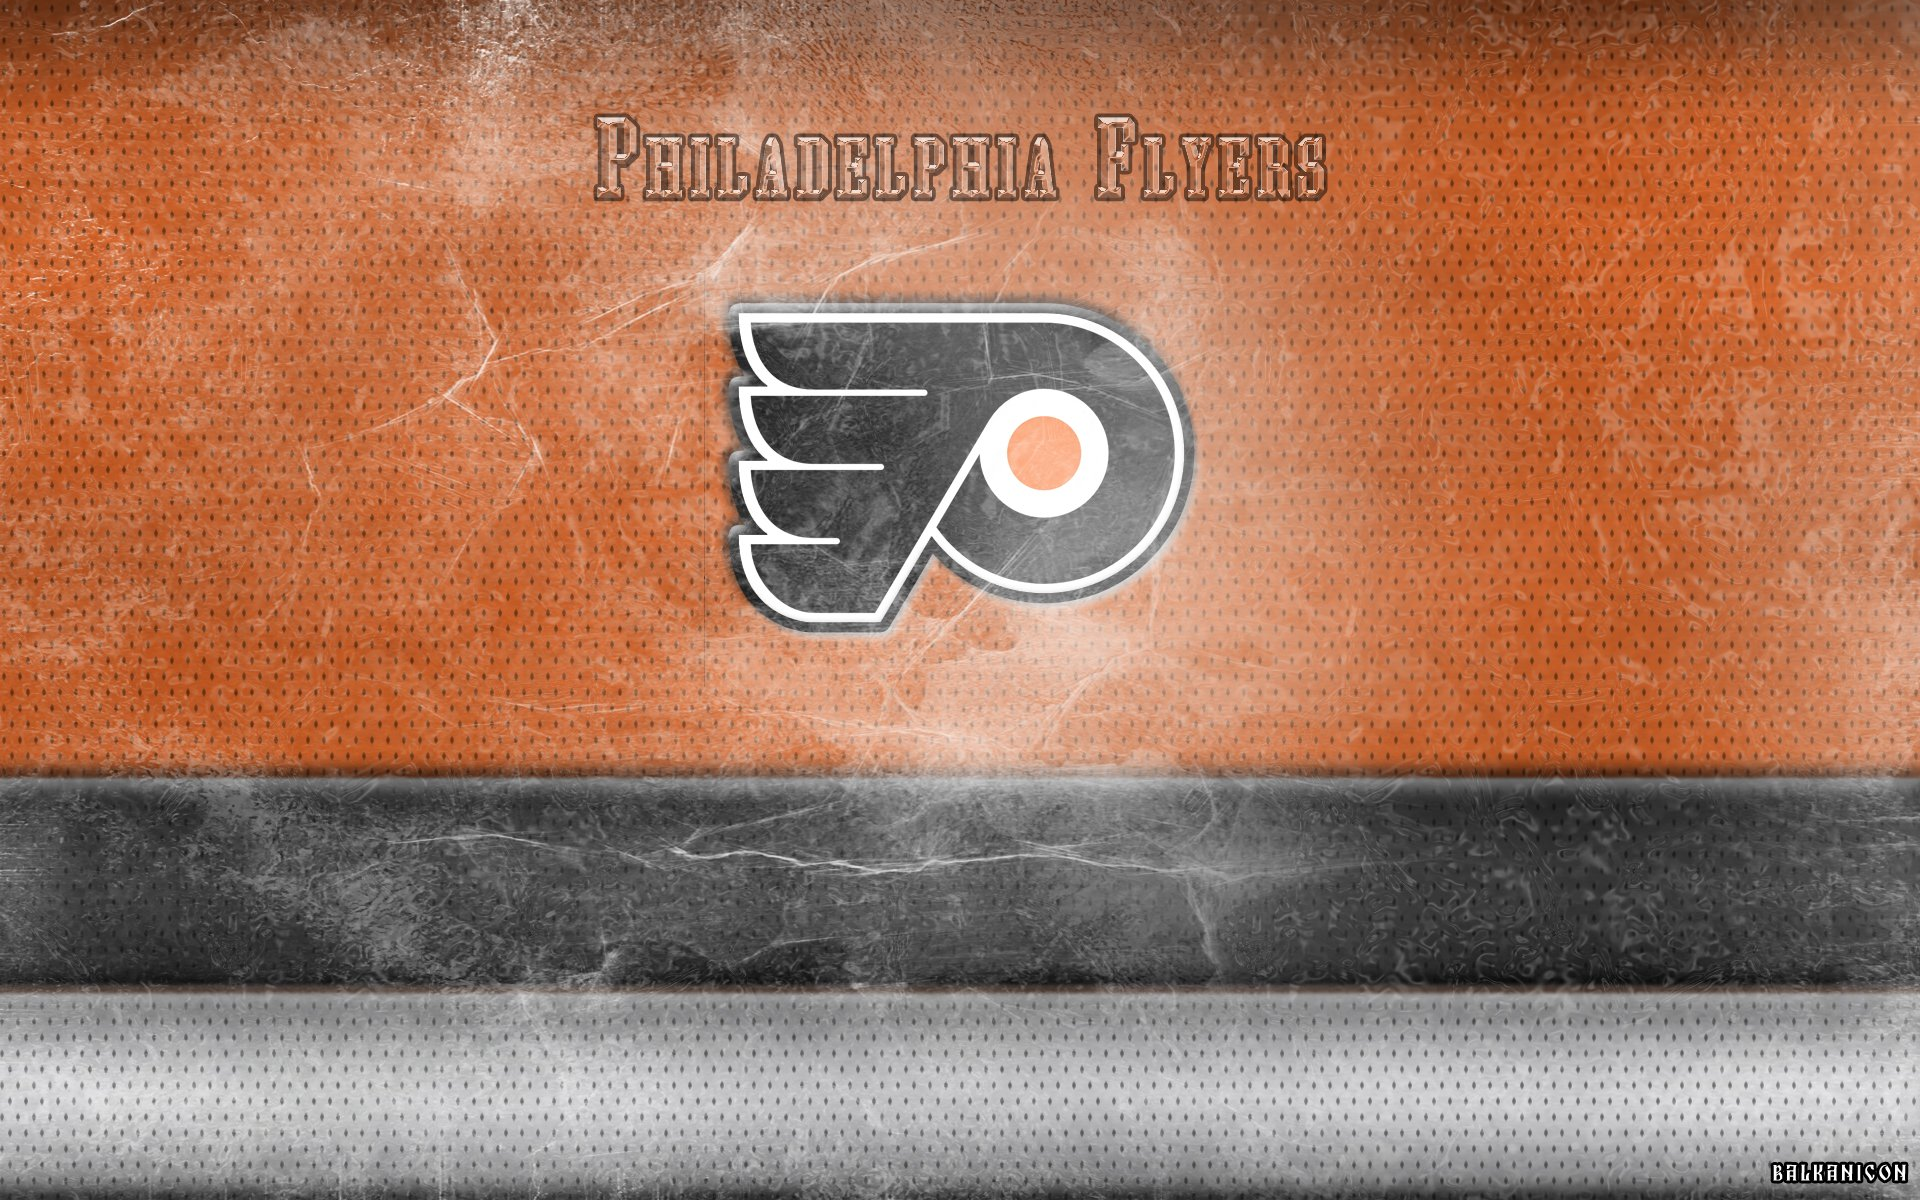 PHILADELPHIA FLYERS nhl hockey 16 wallpaper 1920x1200 1920x1200